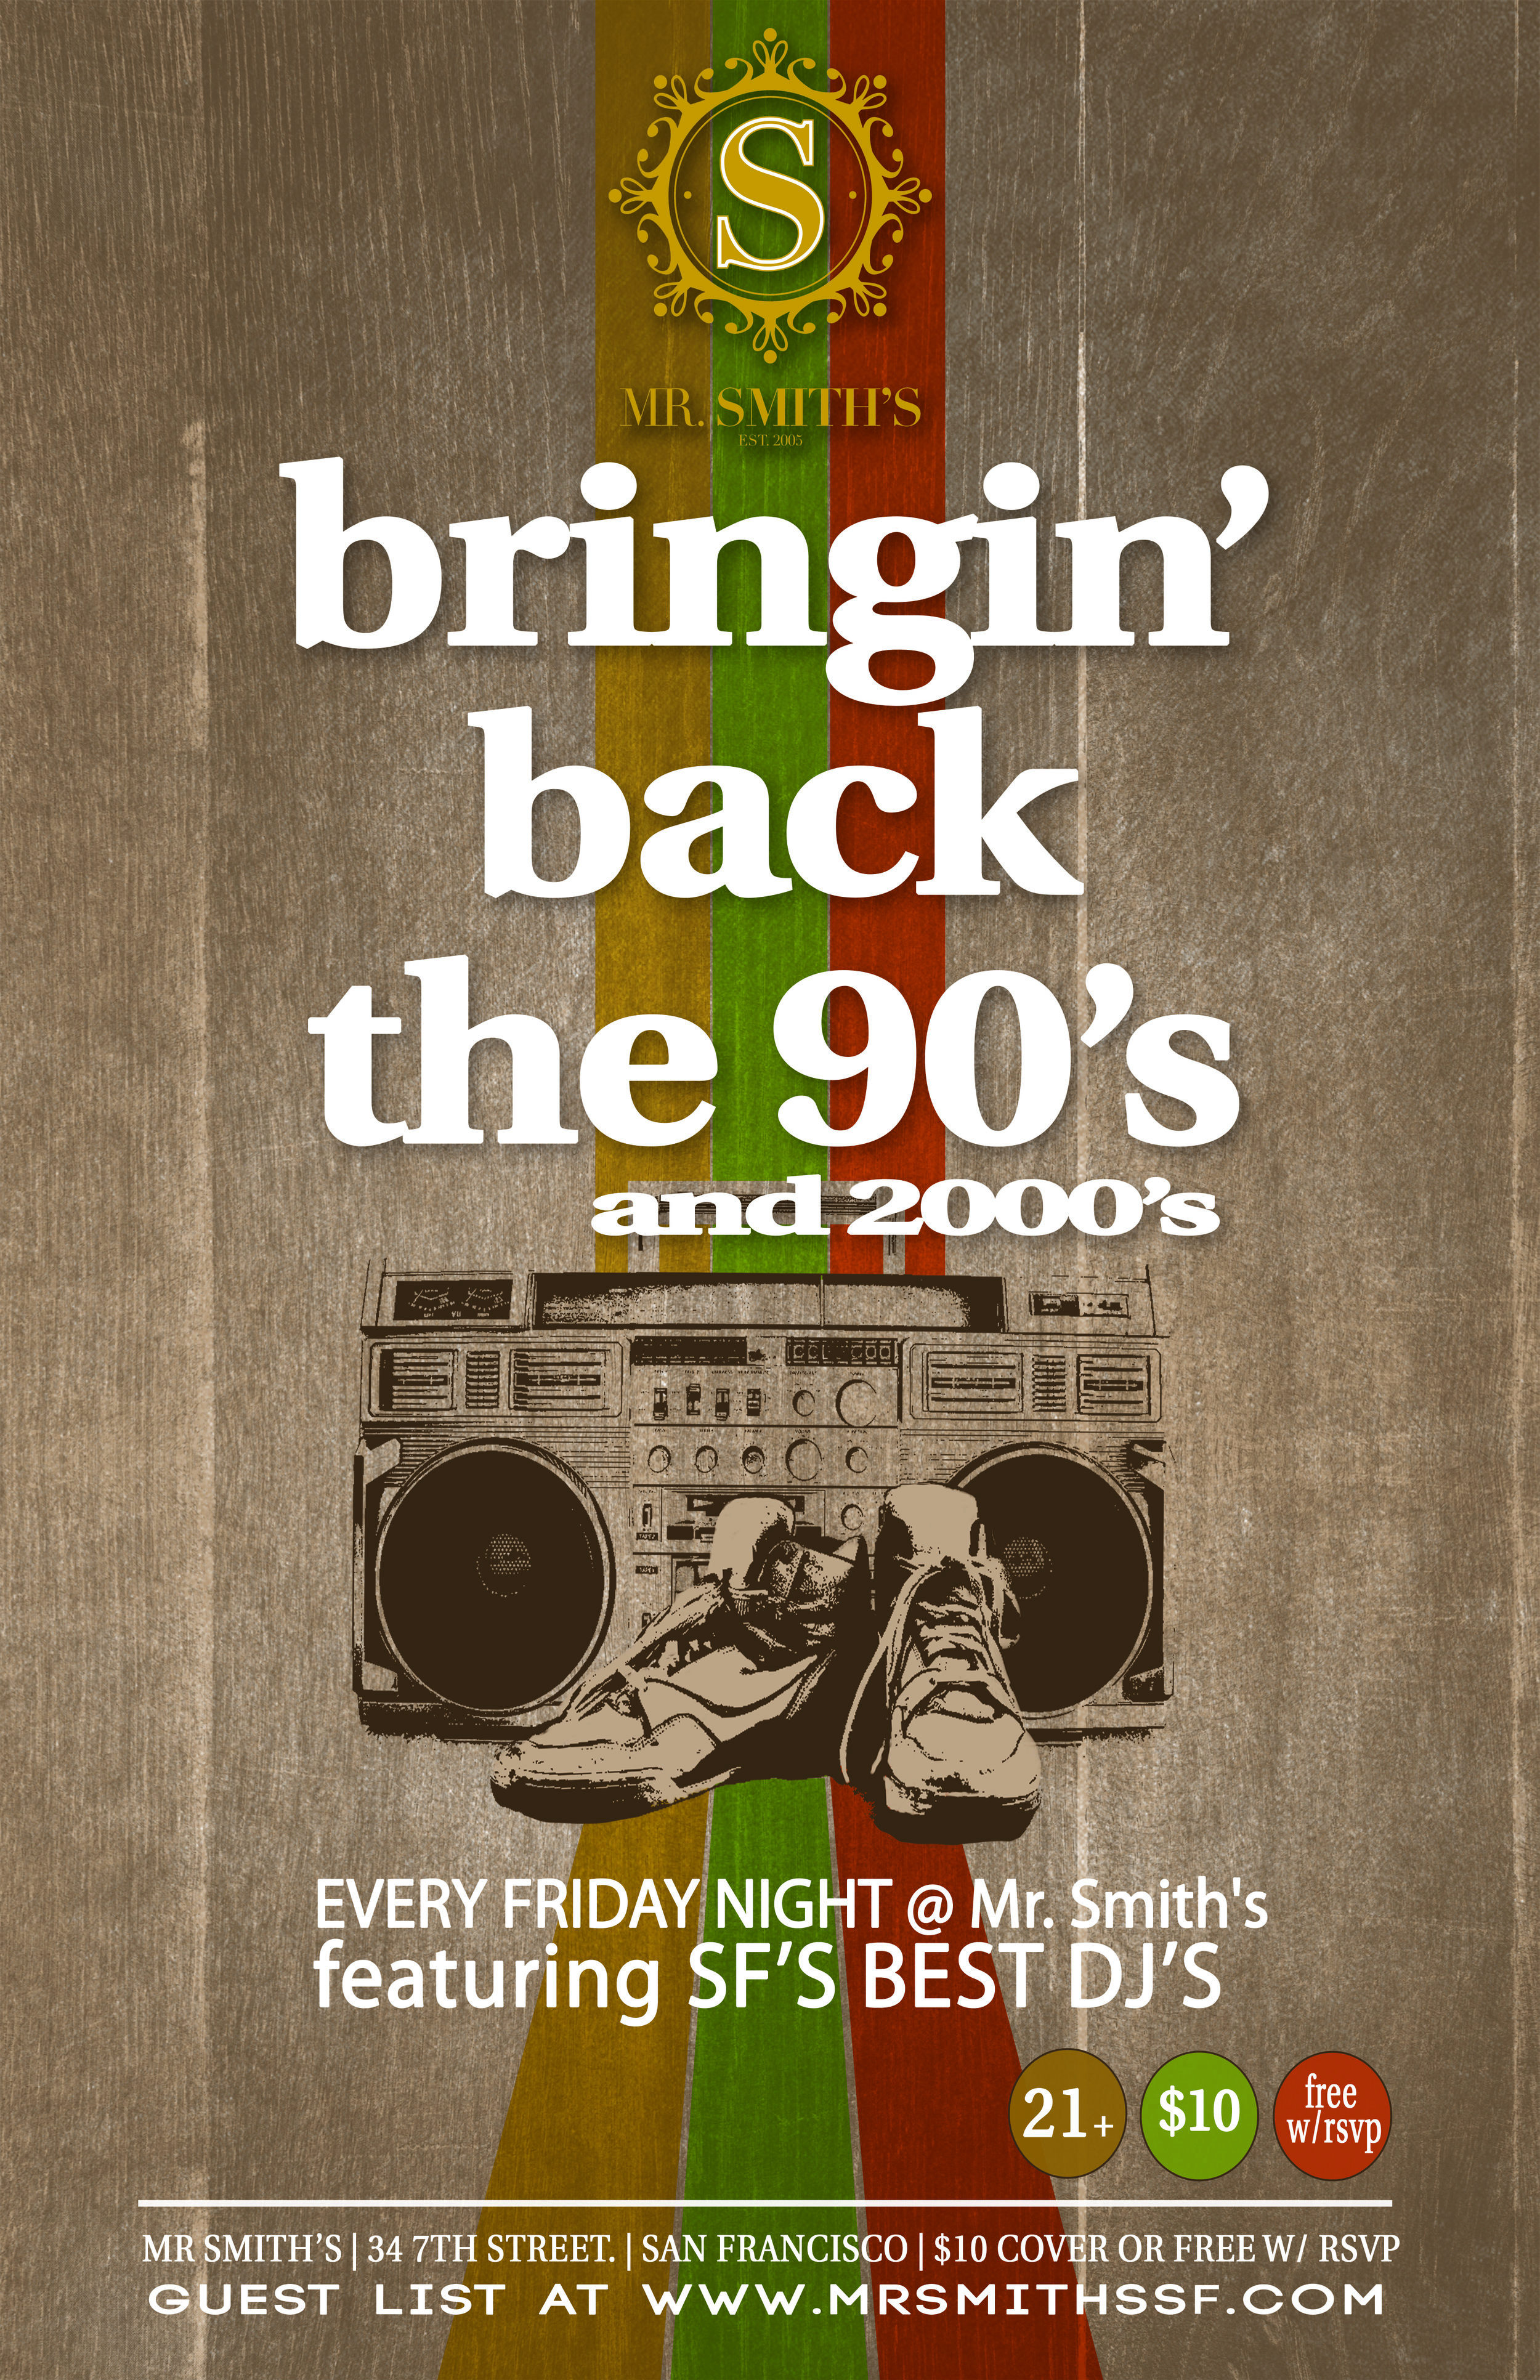 Go back in time every Friday with our throwback party, Bringin' Back the 90's & 2000's. Dance to the best of two decades of hits from across the board, Hip Hop, pop, mashups, EDM, (with some current top 40 dropped in for good measure).  Beat the cover and sign up on our guest list by clicking this link here:  GUEST LIST .  For inquiries regarding bottle service, VIP room bookings or other info please contact  Michael@mrsmithssf.com .  Hours: 9pm- 2am